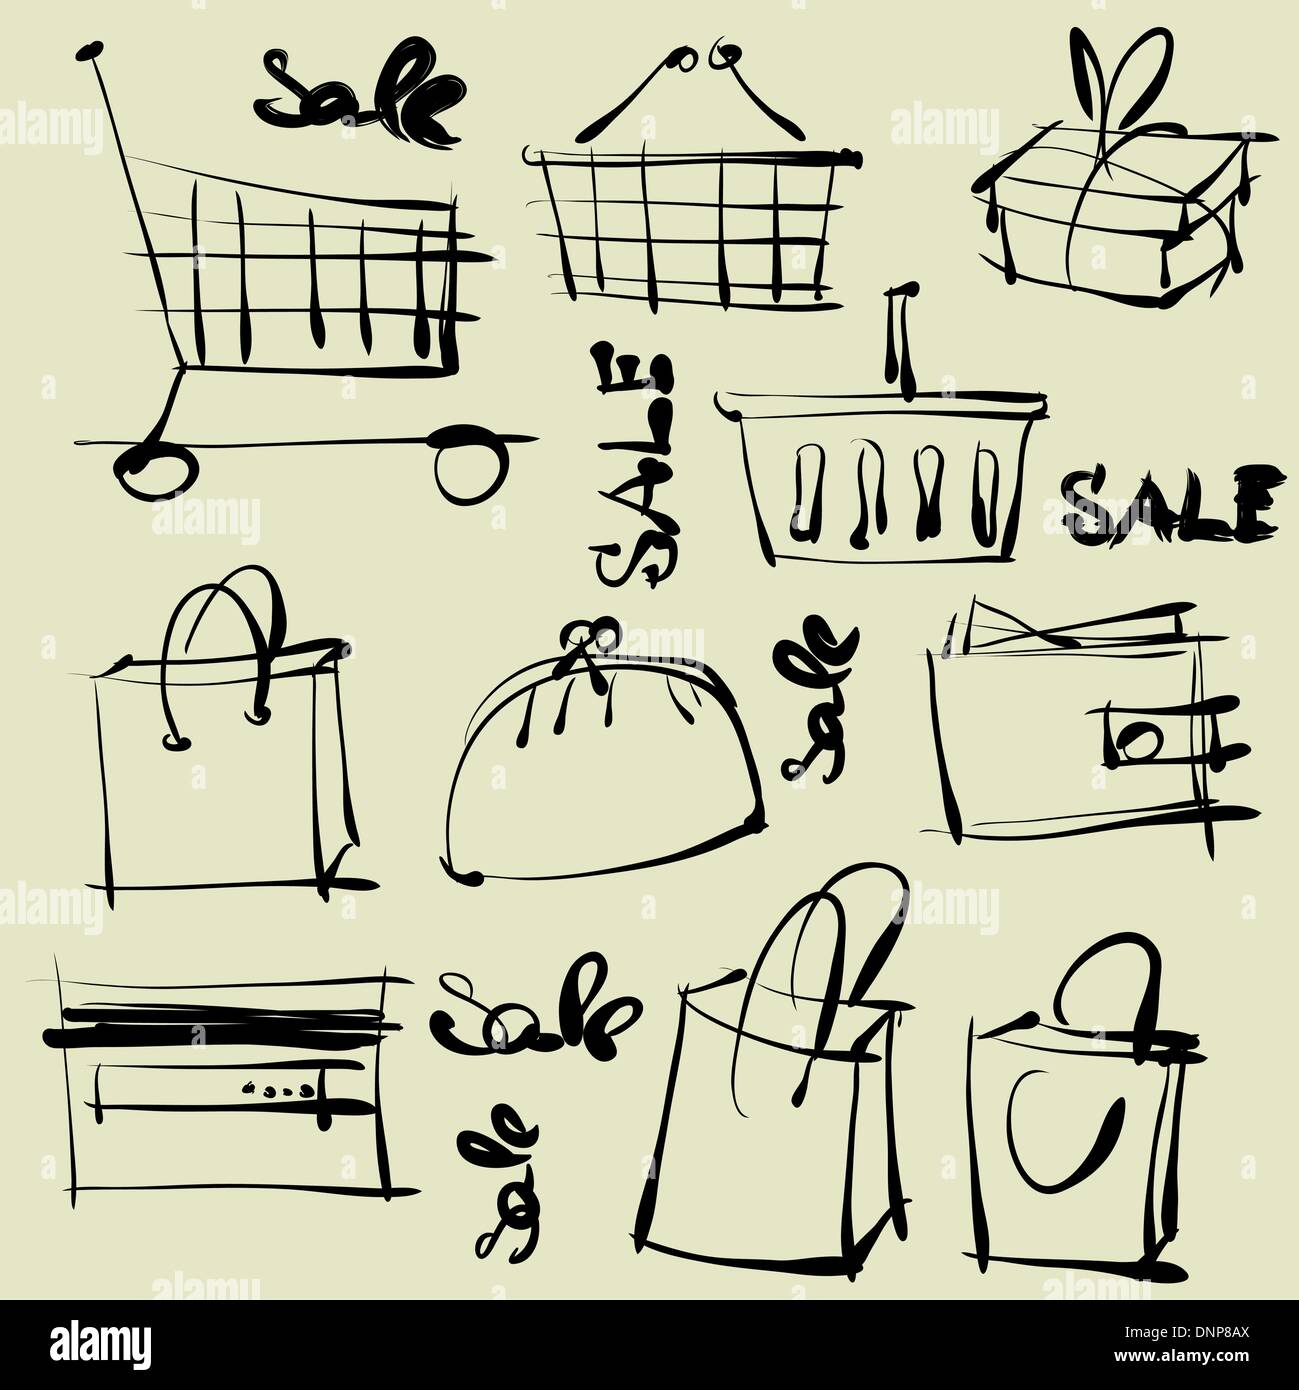 line drawings of shopping - Stock Image